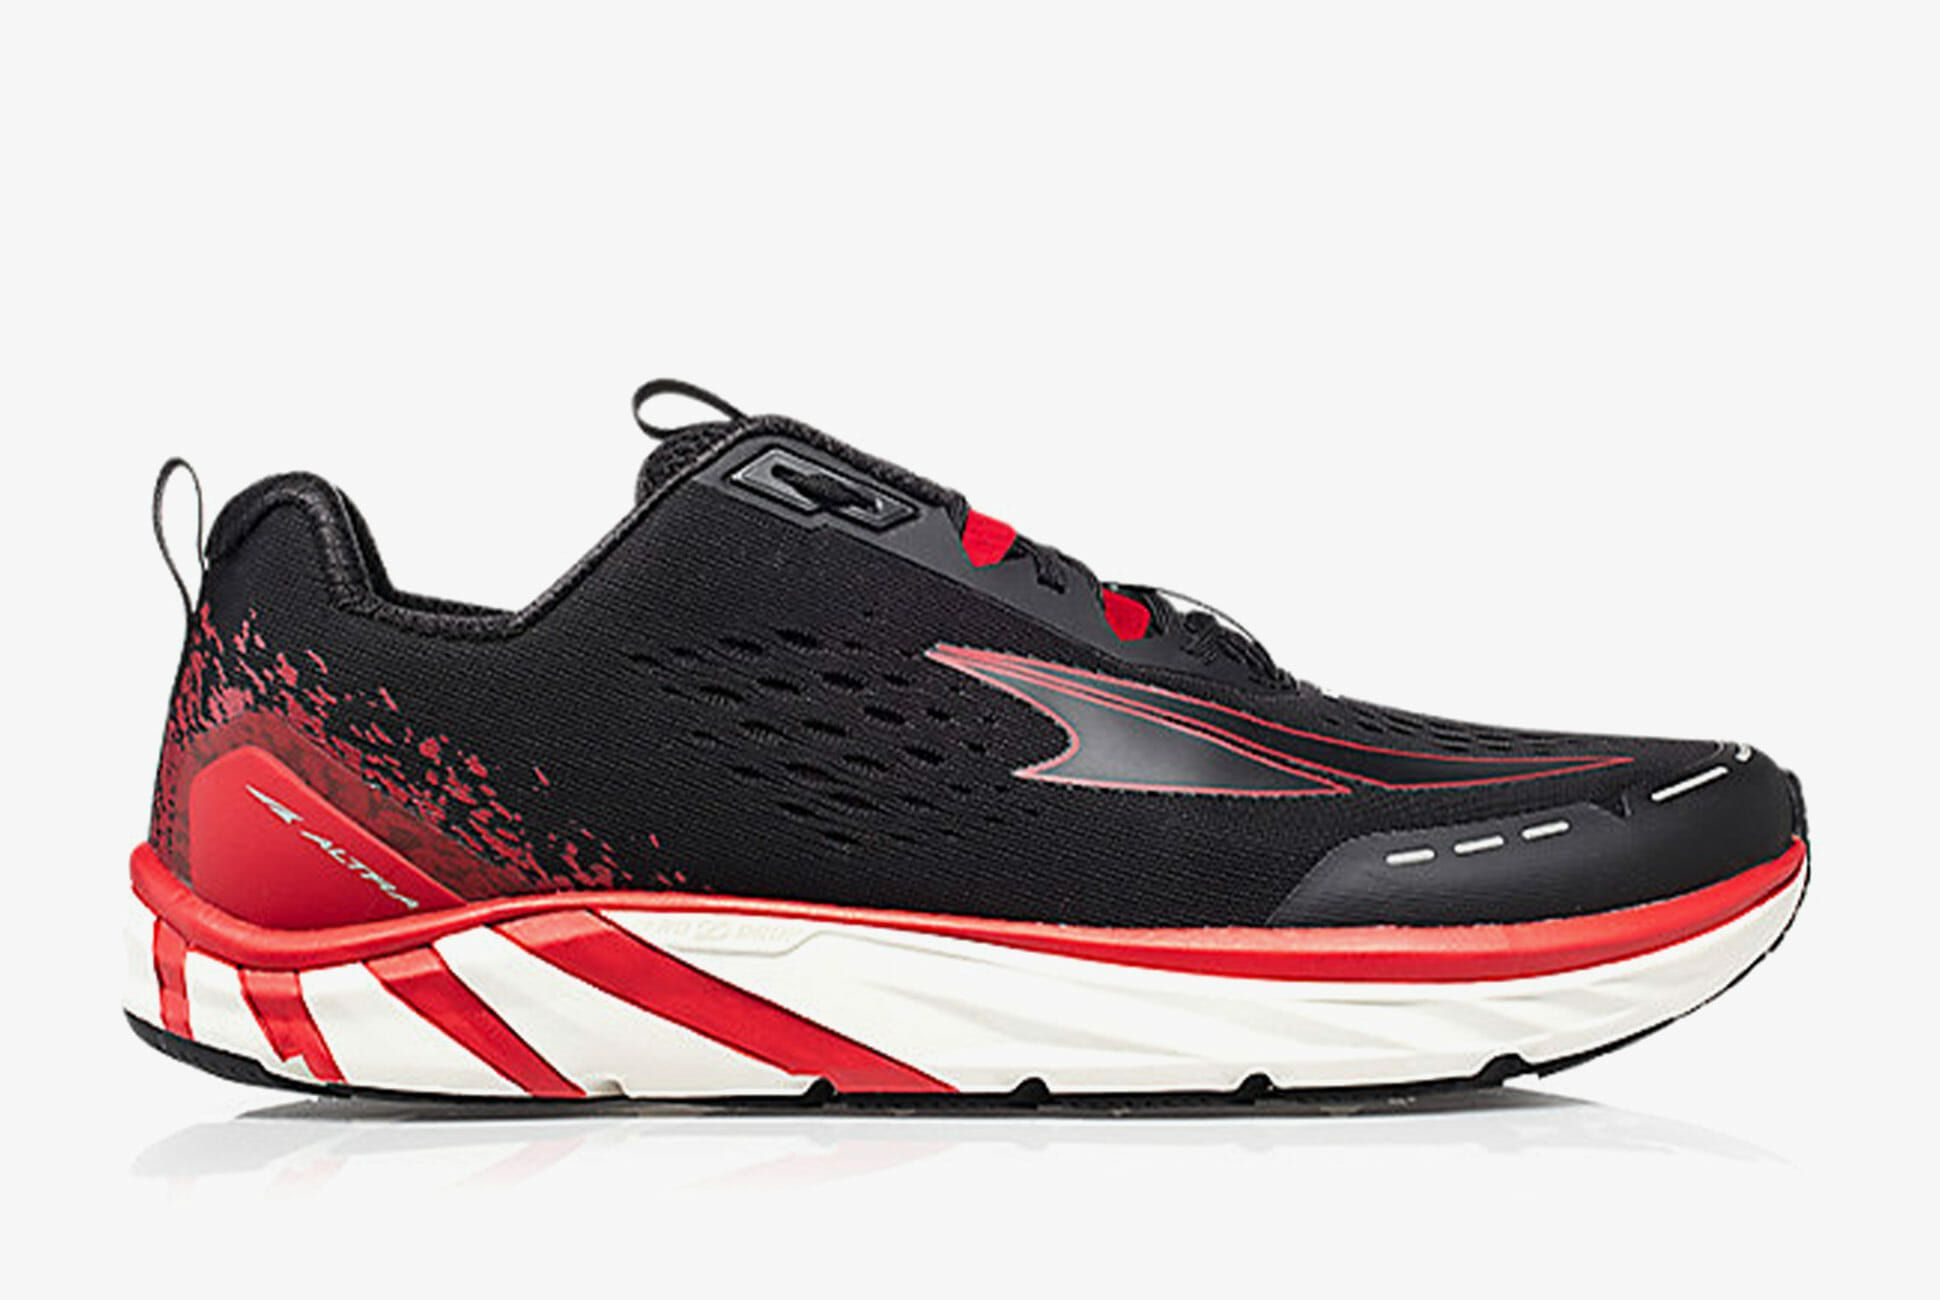 The 15 Best New Shoes for Long, Speed and Easy Runs • Gear